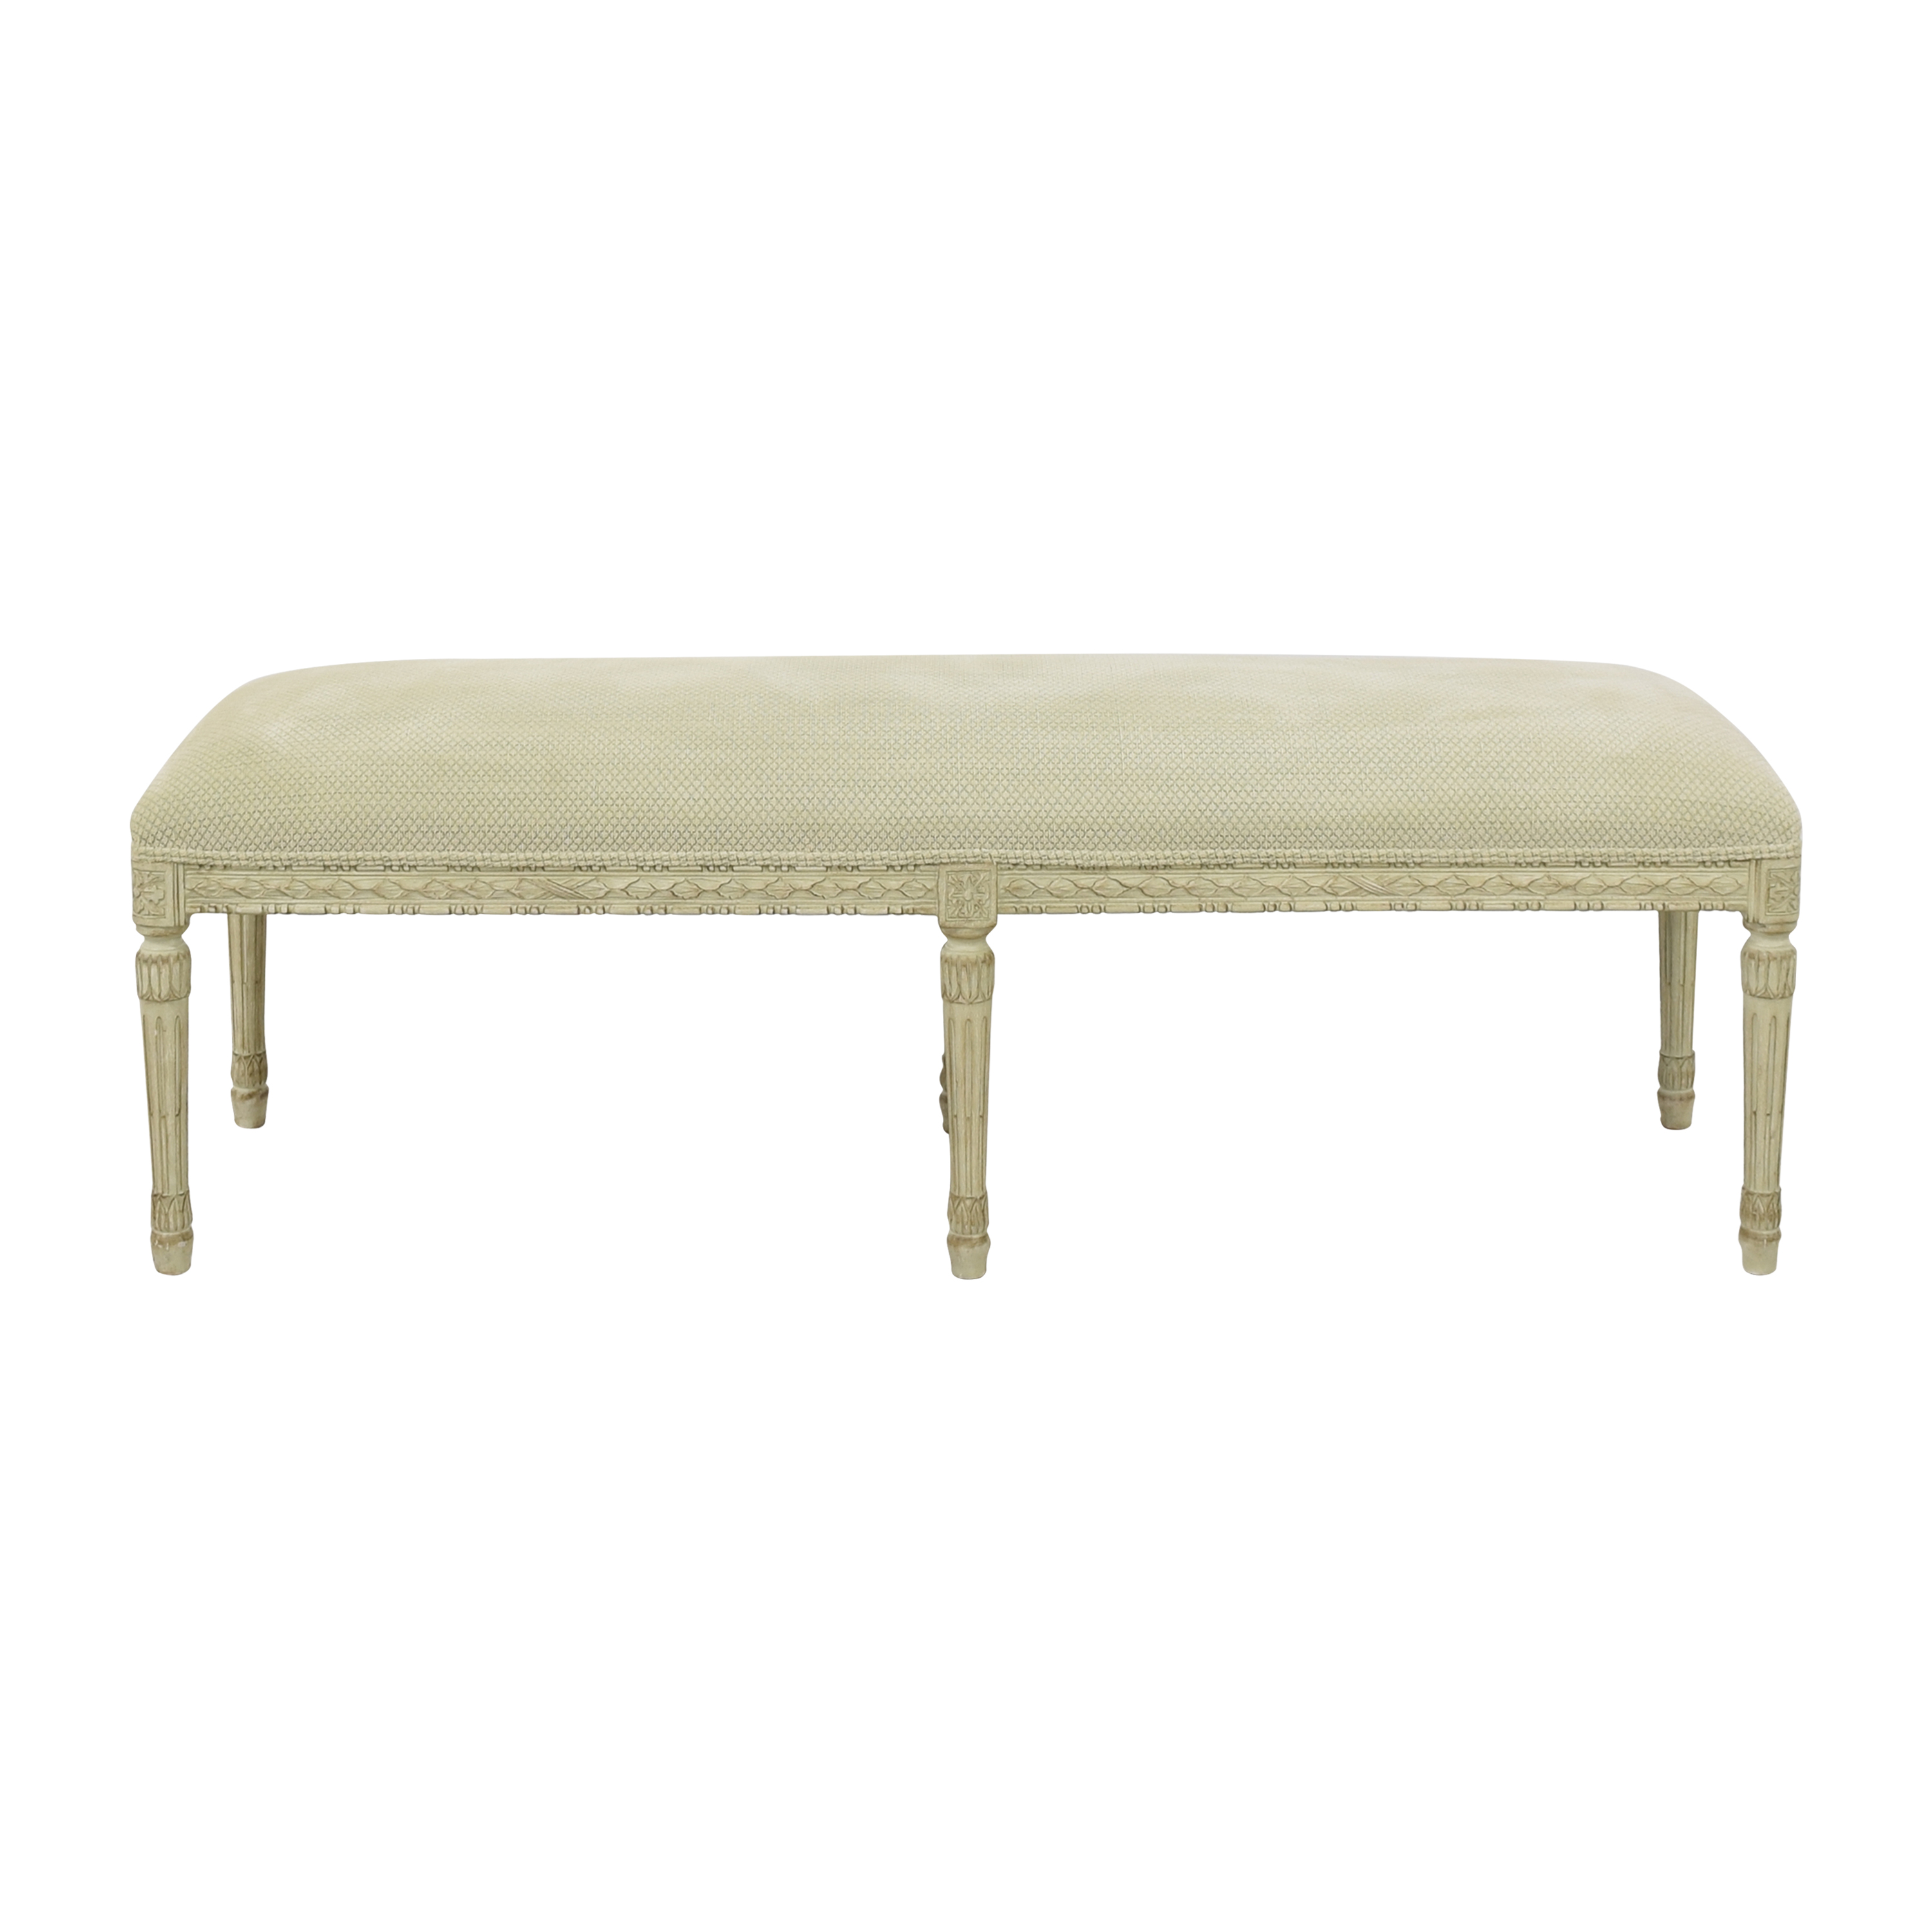 Vintage-Style Upholstered Bench dimensions